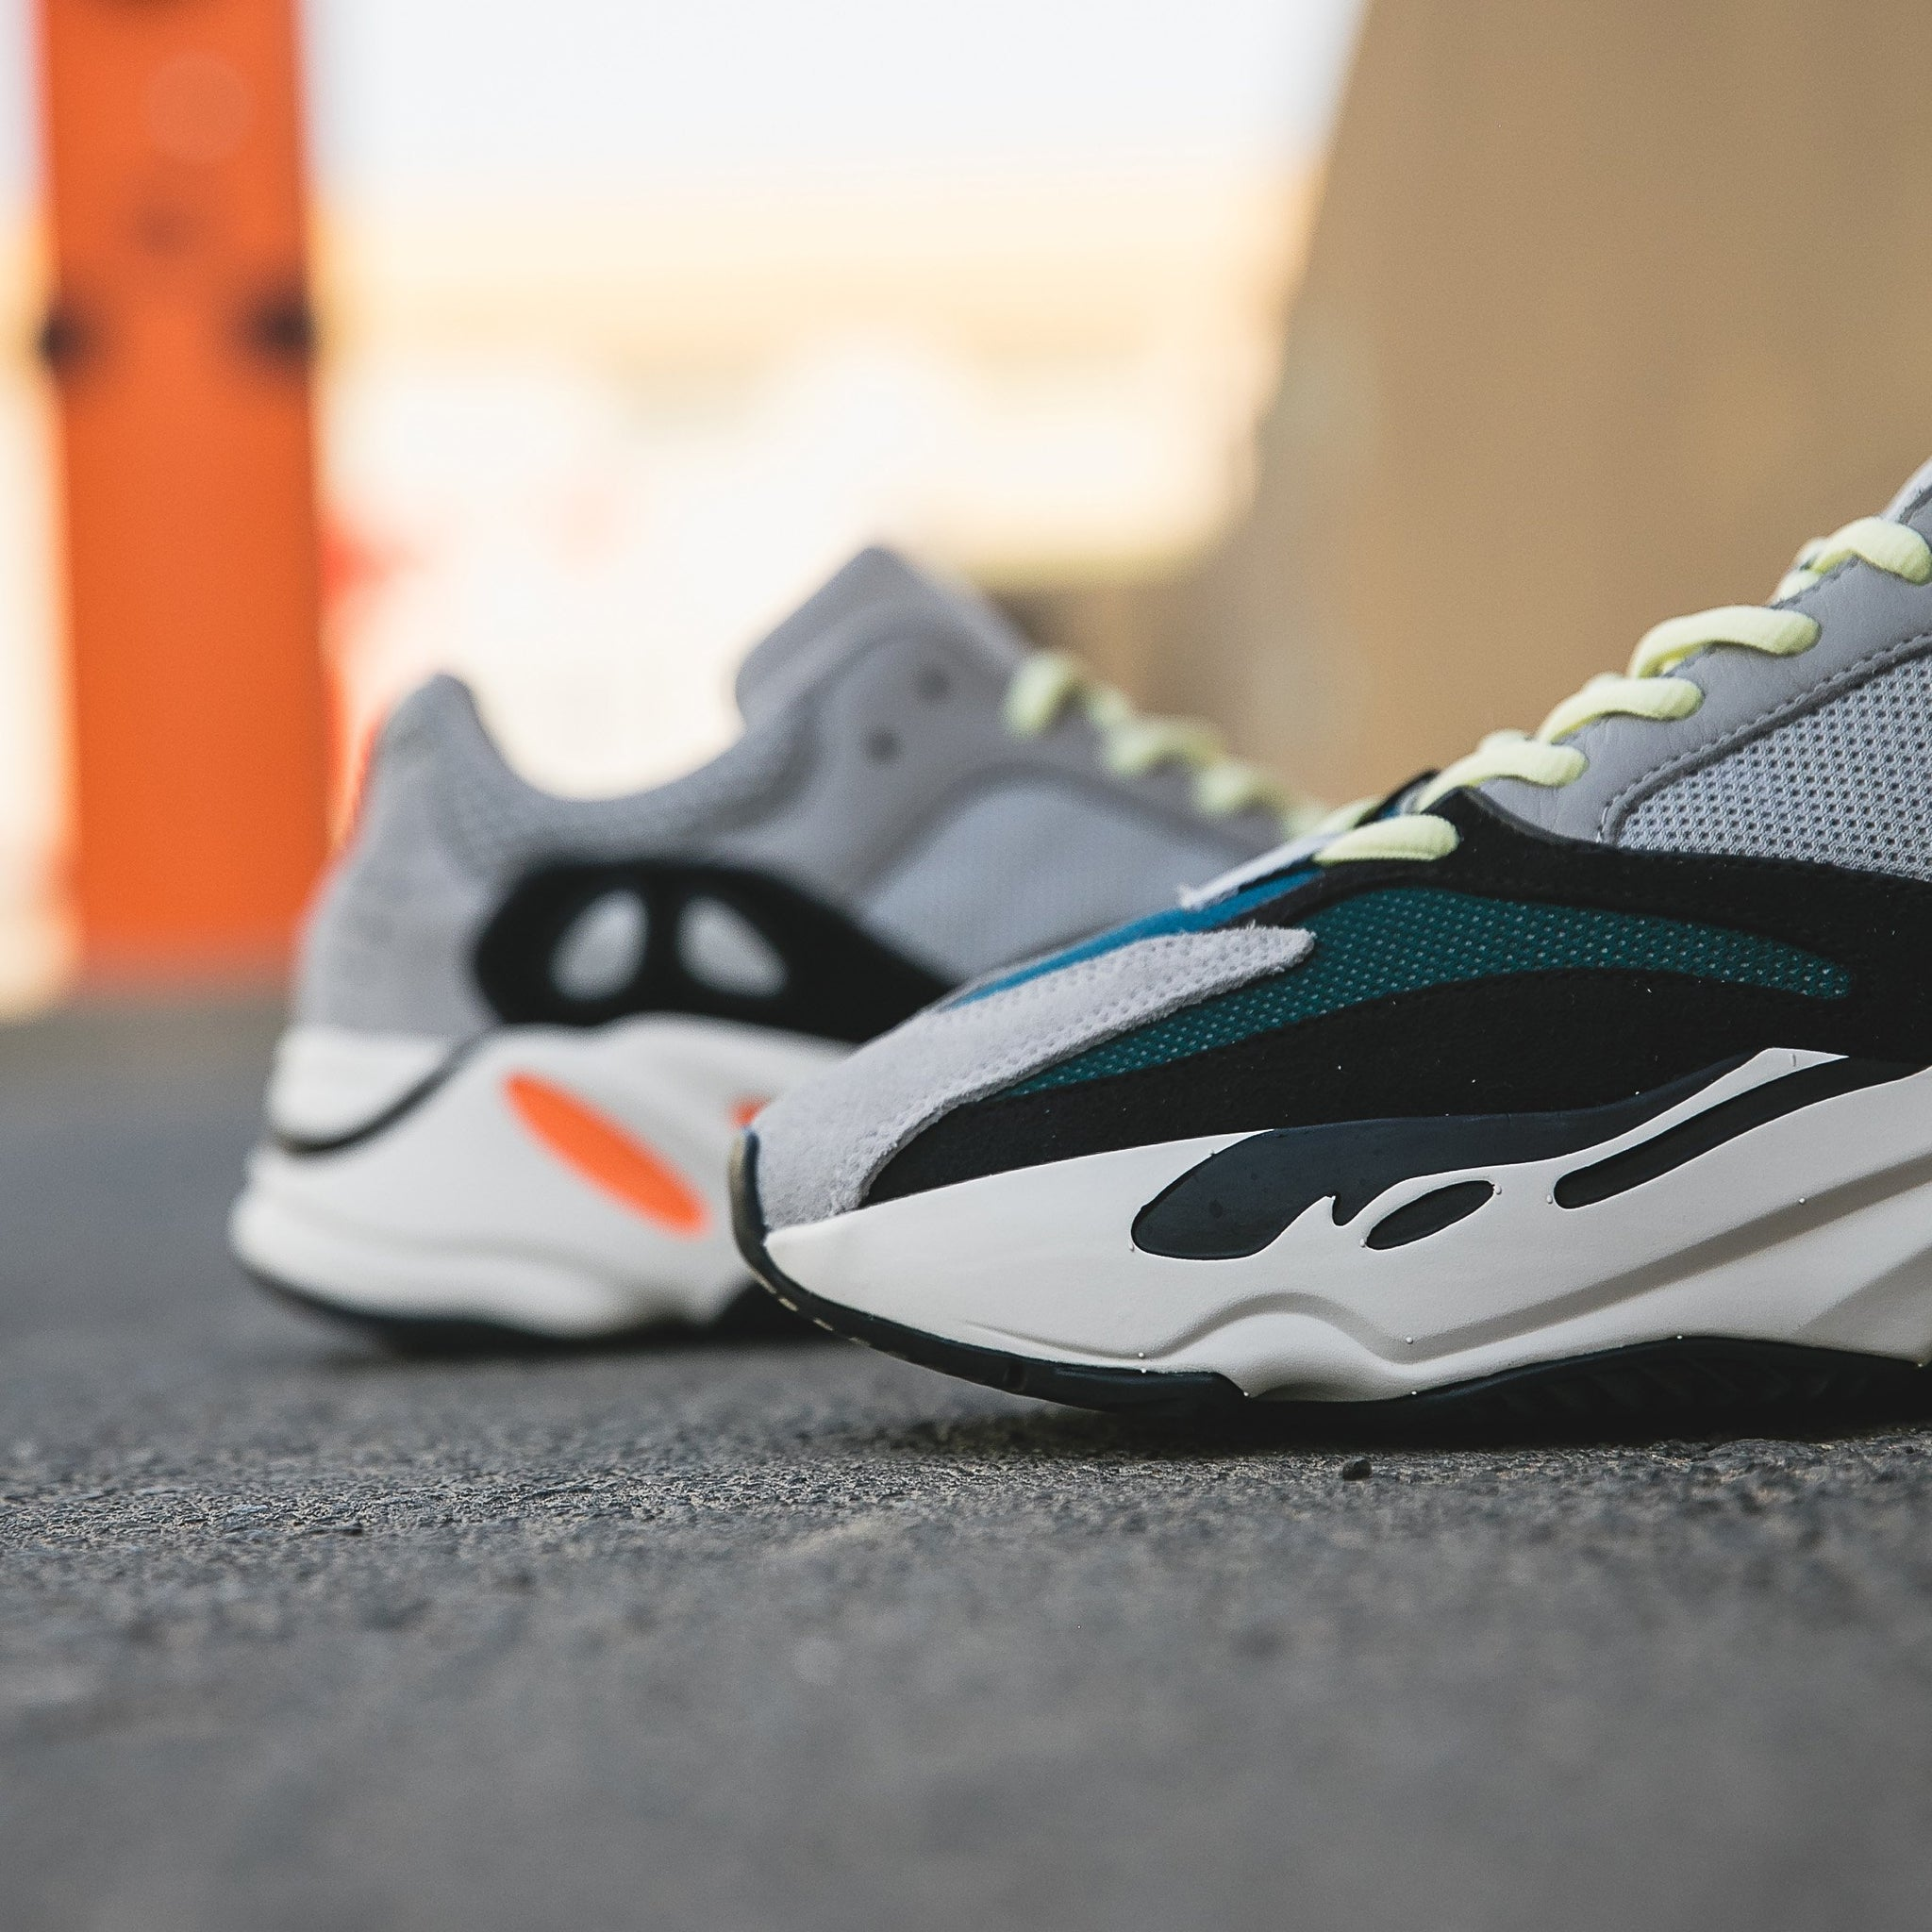 e9a4ffbbae4 adidas YEEZY BOOST 700 Wave Runner - The Good Life